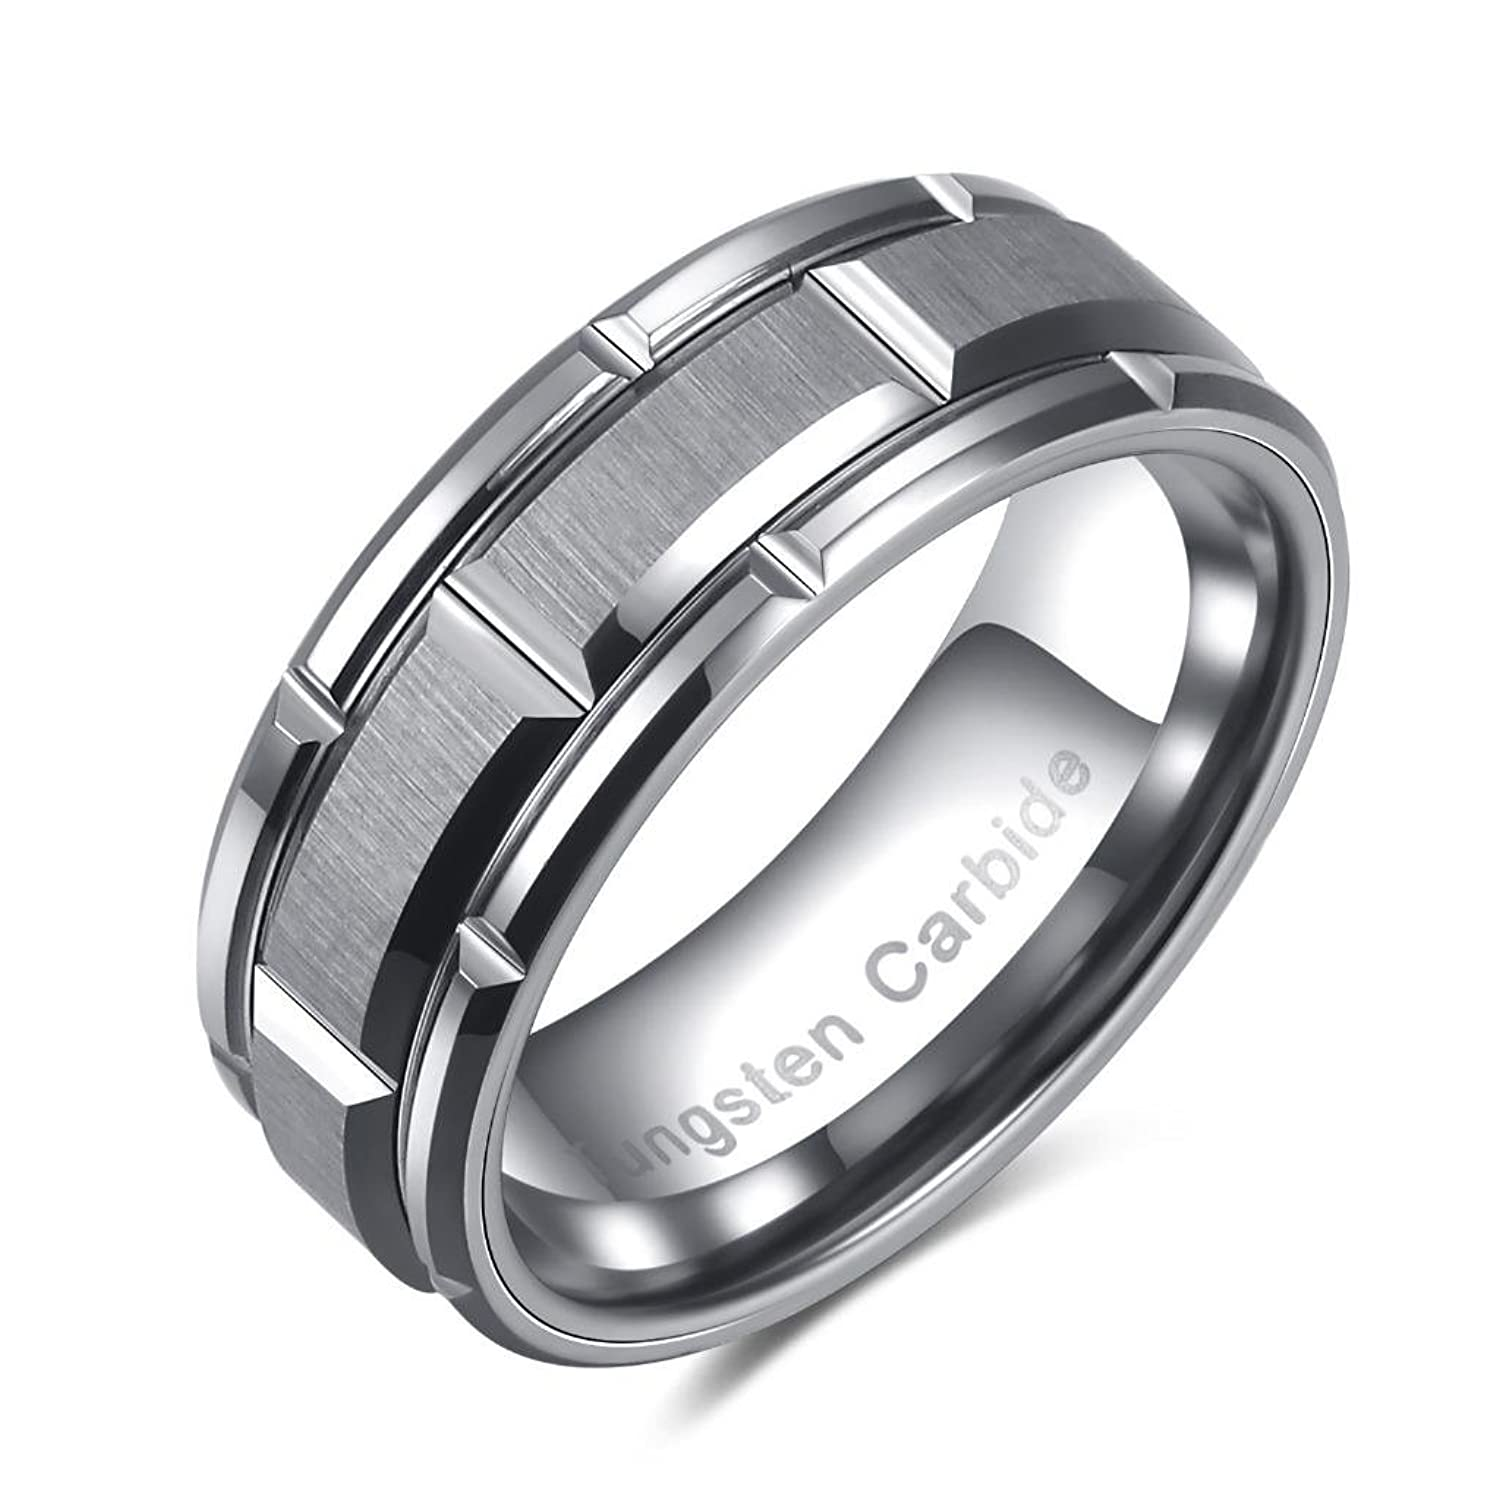 Castillna 8mm Brick Pattern Tungsten Ring for Men